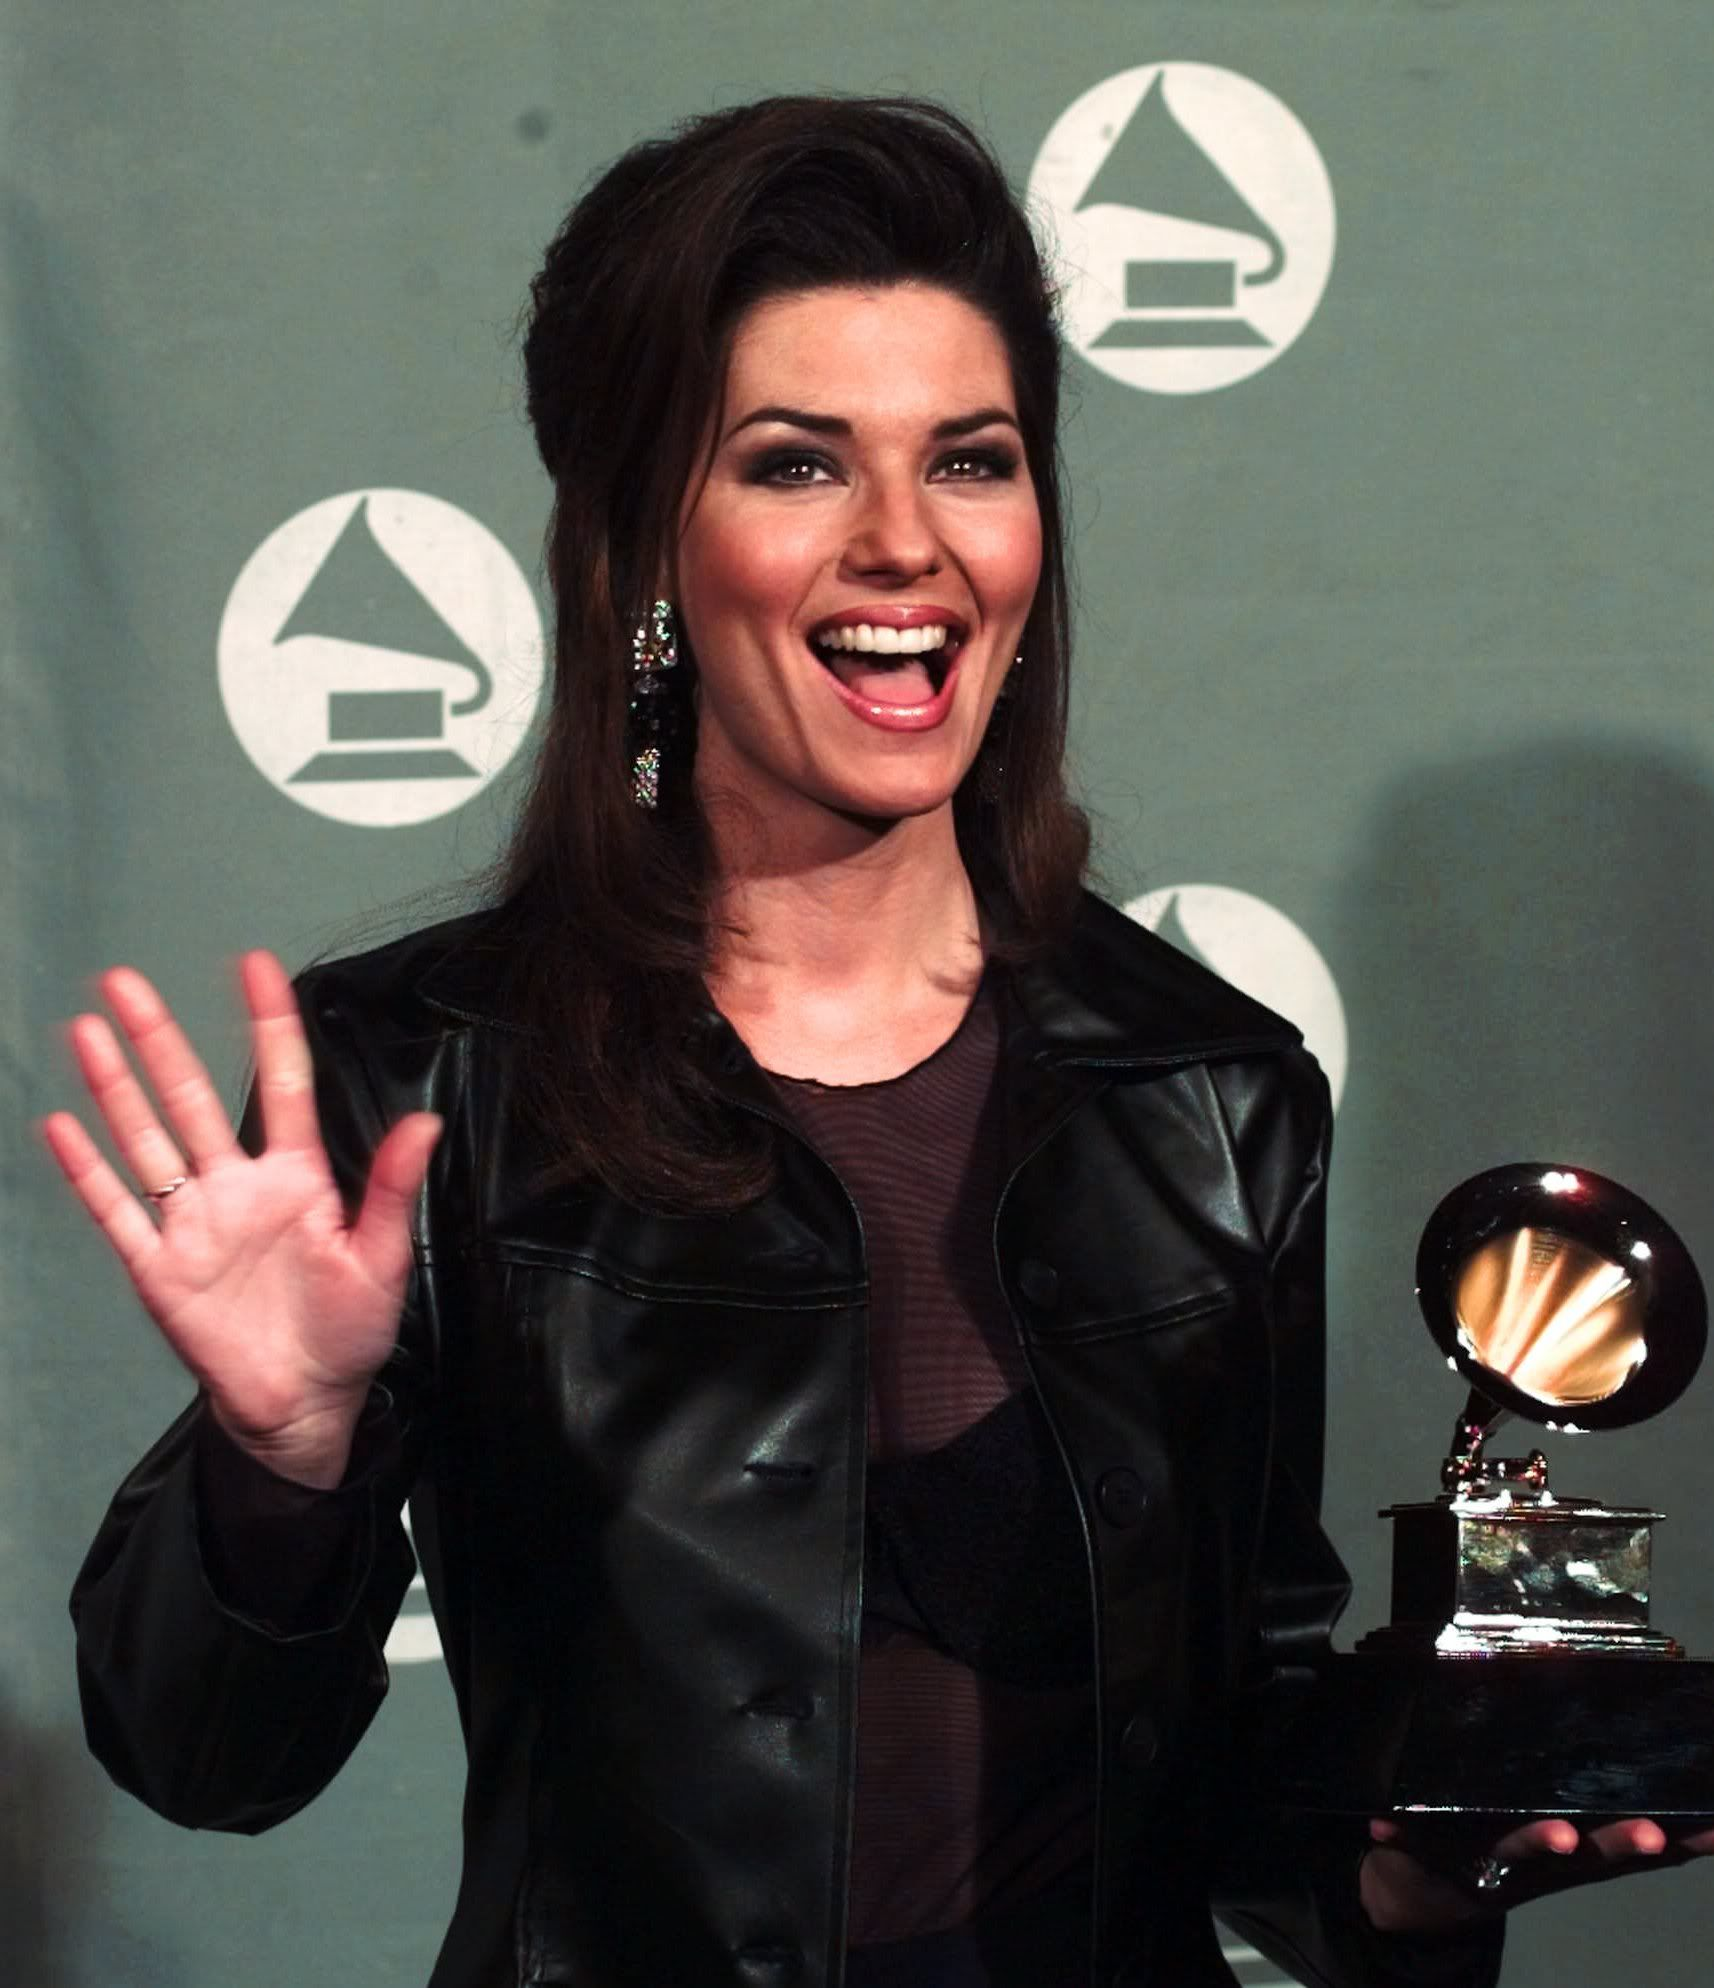 Shania at the 1996 Grammy Awards where she won her first Grammy! -- Best Country Album for The Woman In Me.